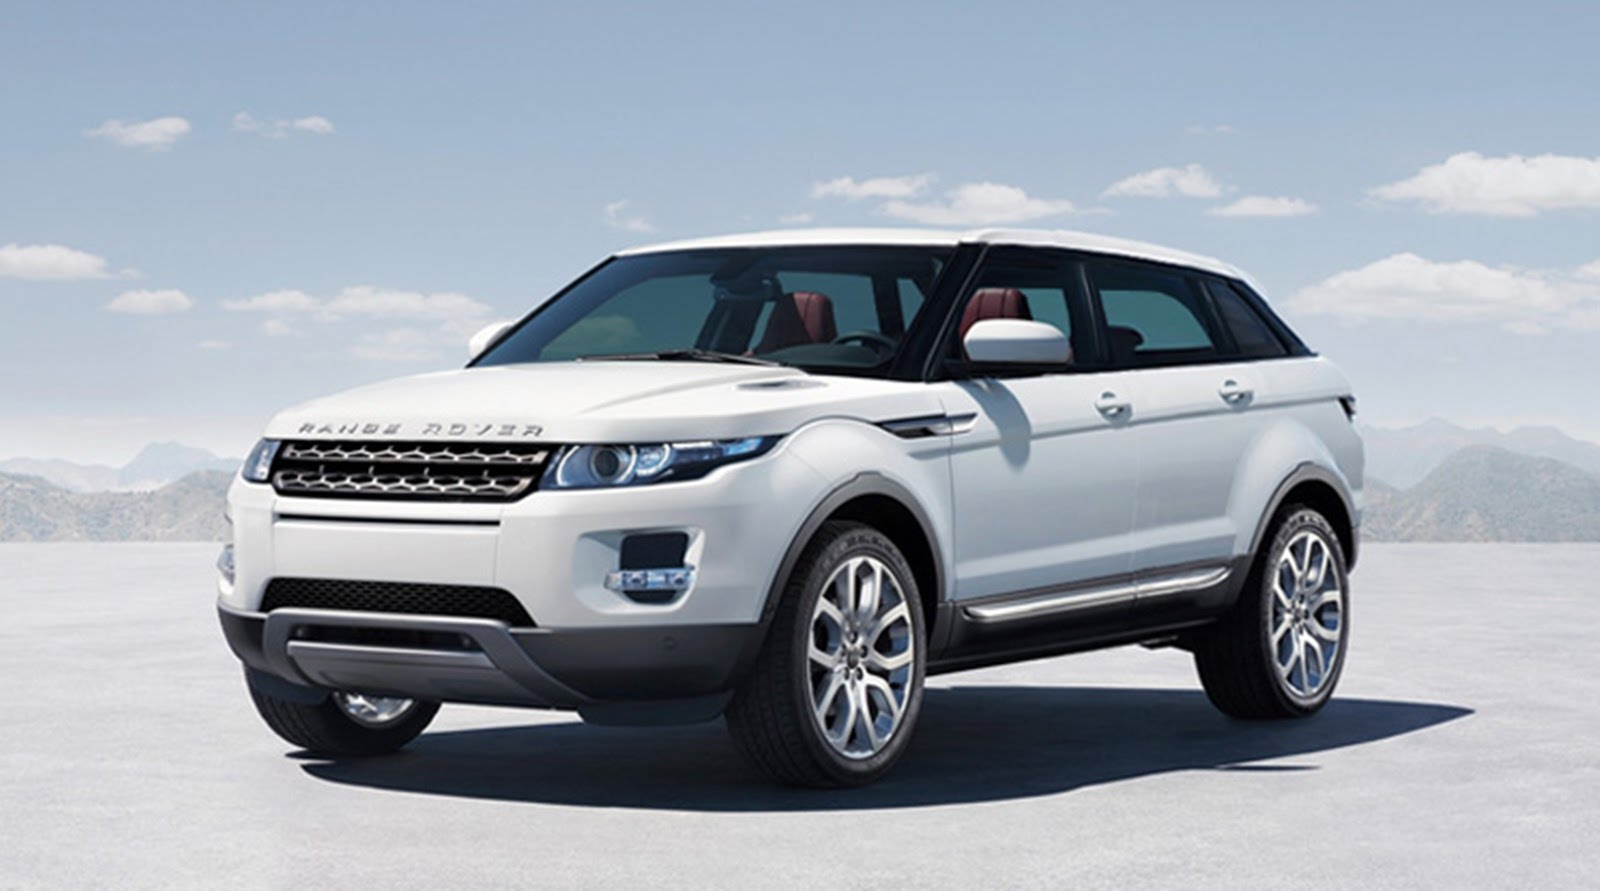 Land-rover evoque photo - 2